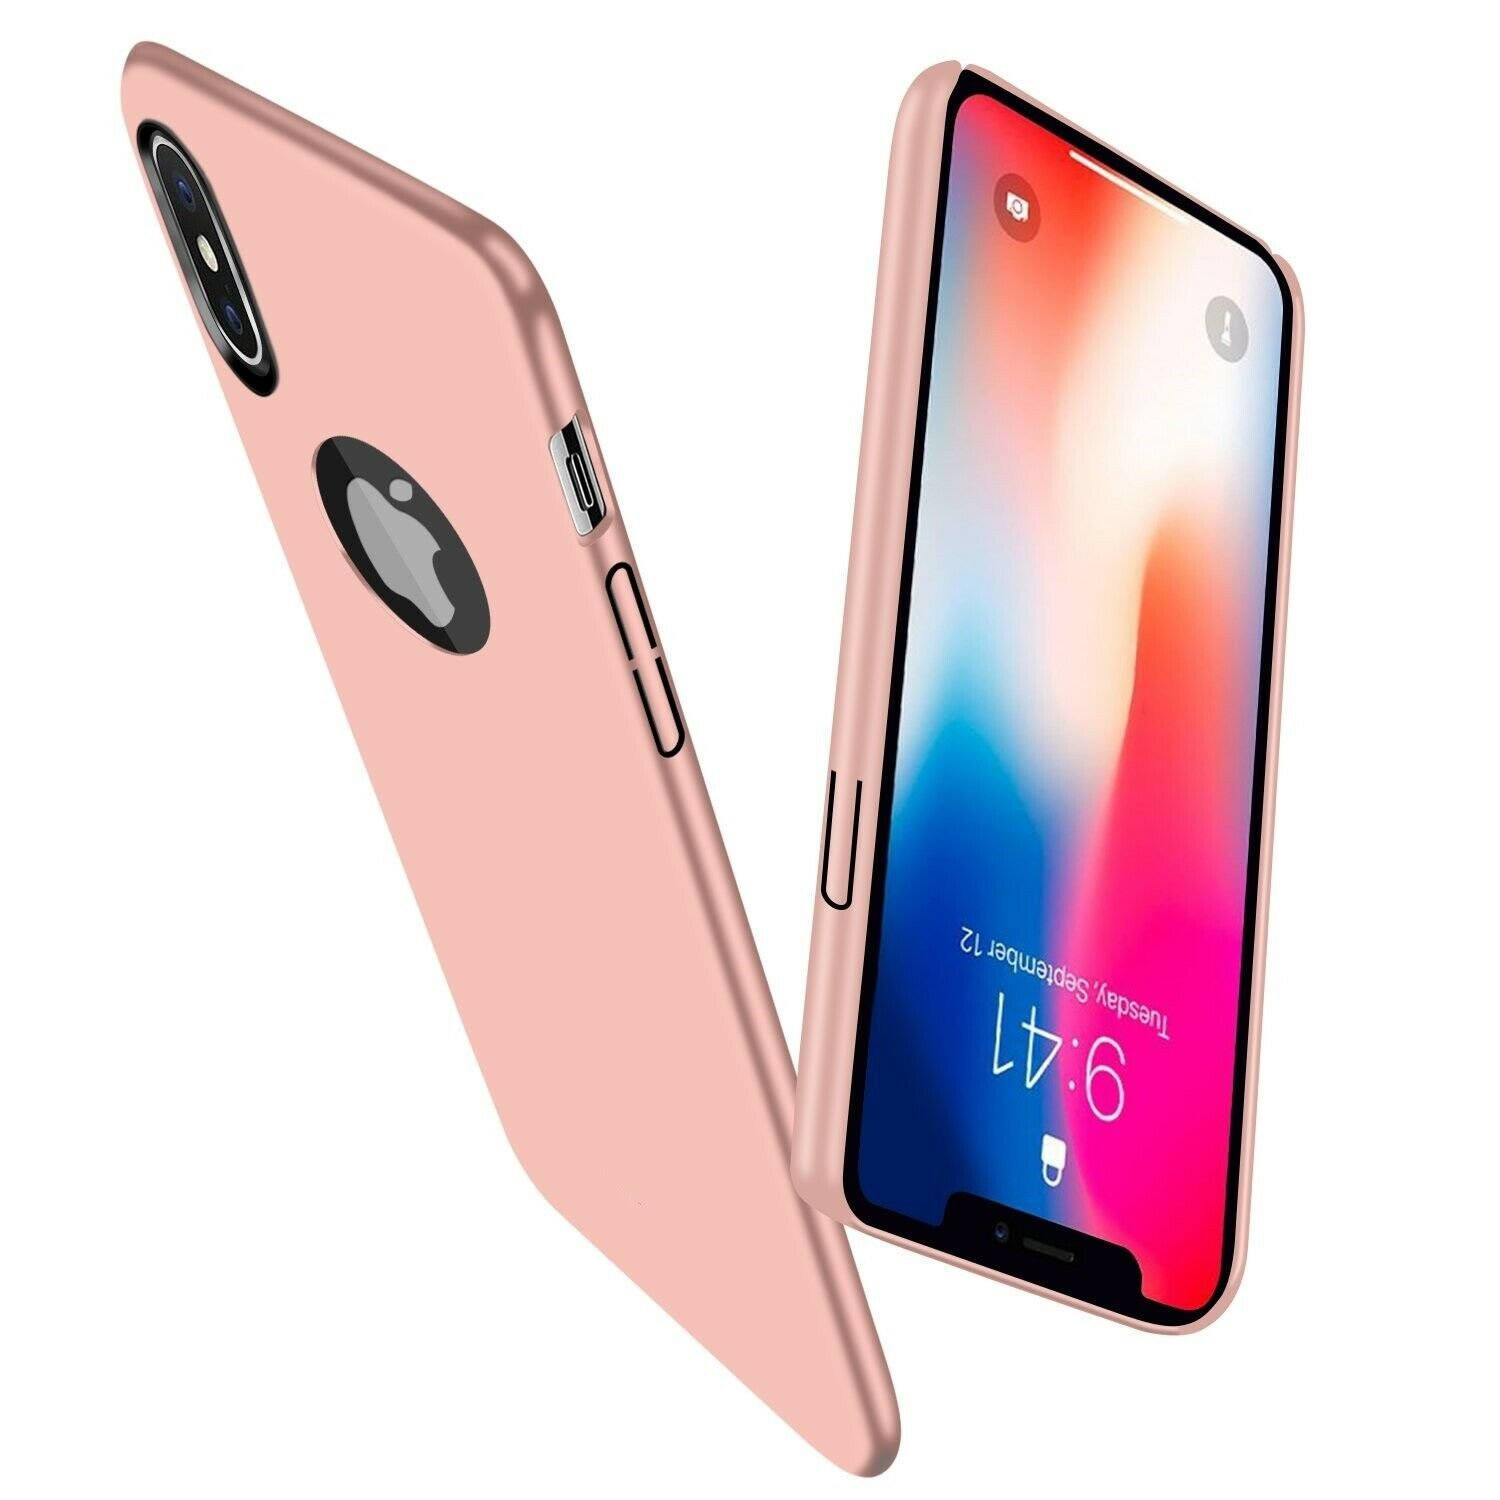 For-iPhone-X-XR-XS-Max-Matte-Case-Shockproof-Ultra-Thin-Slim-Hard-Cover thumbnail 37